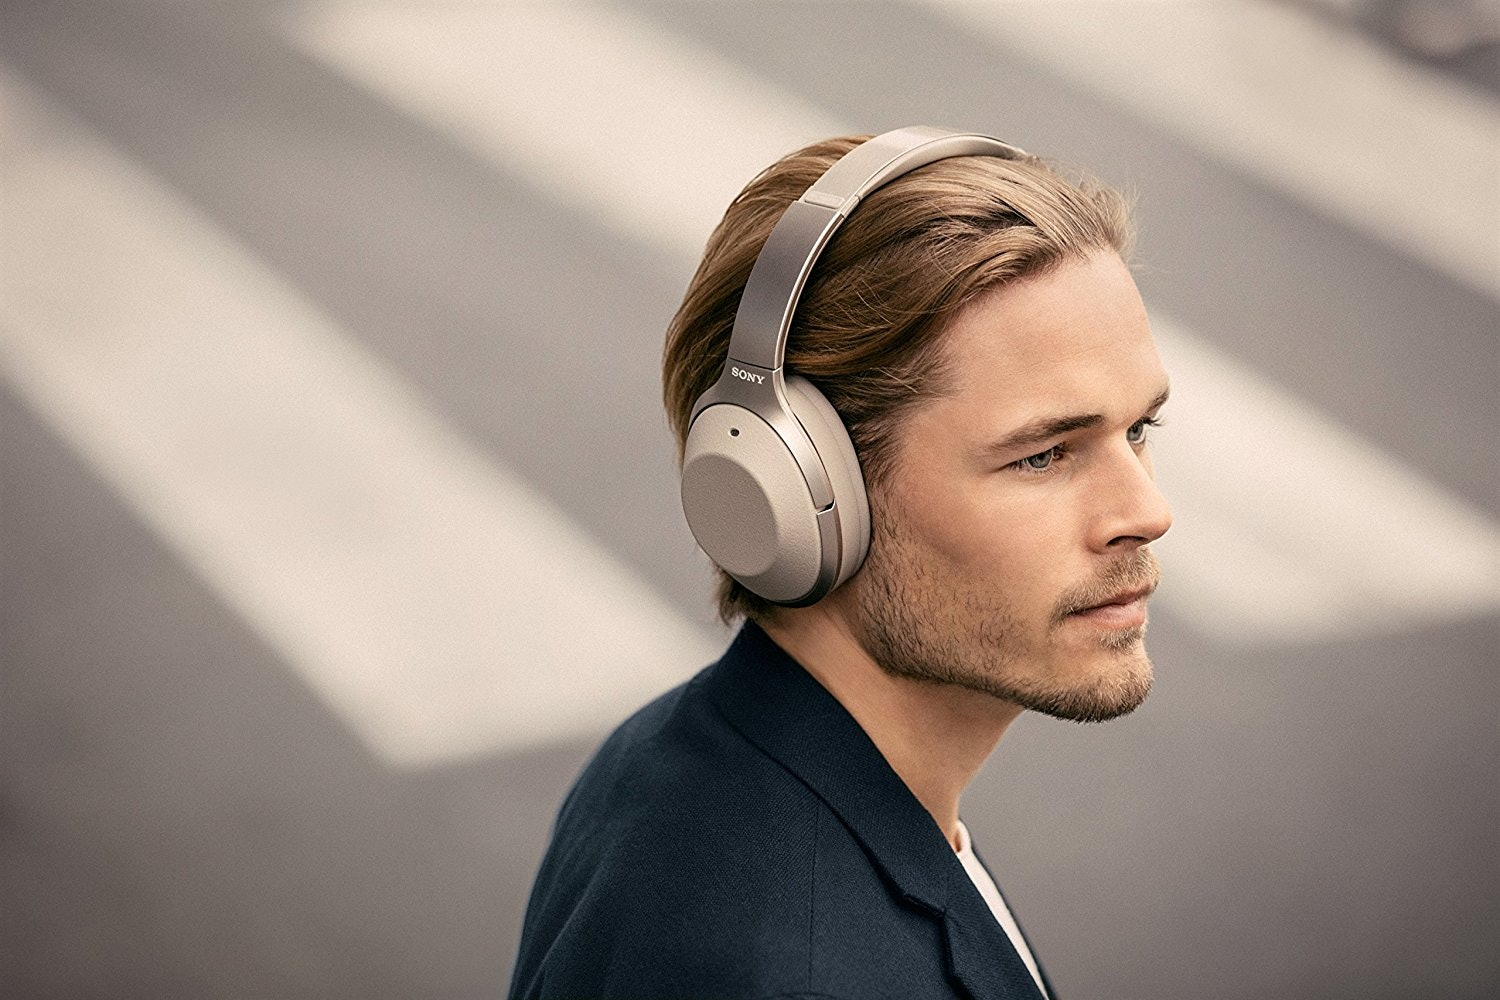 song wh-1000xm2 headphones